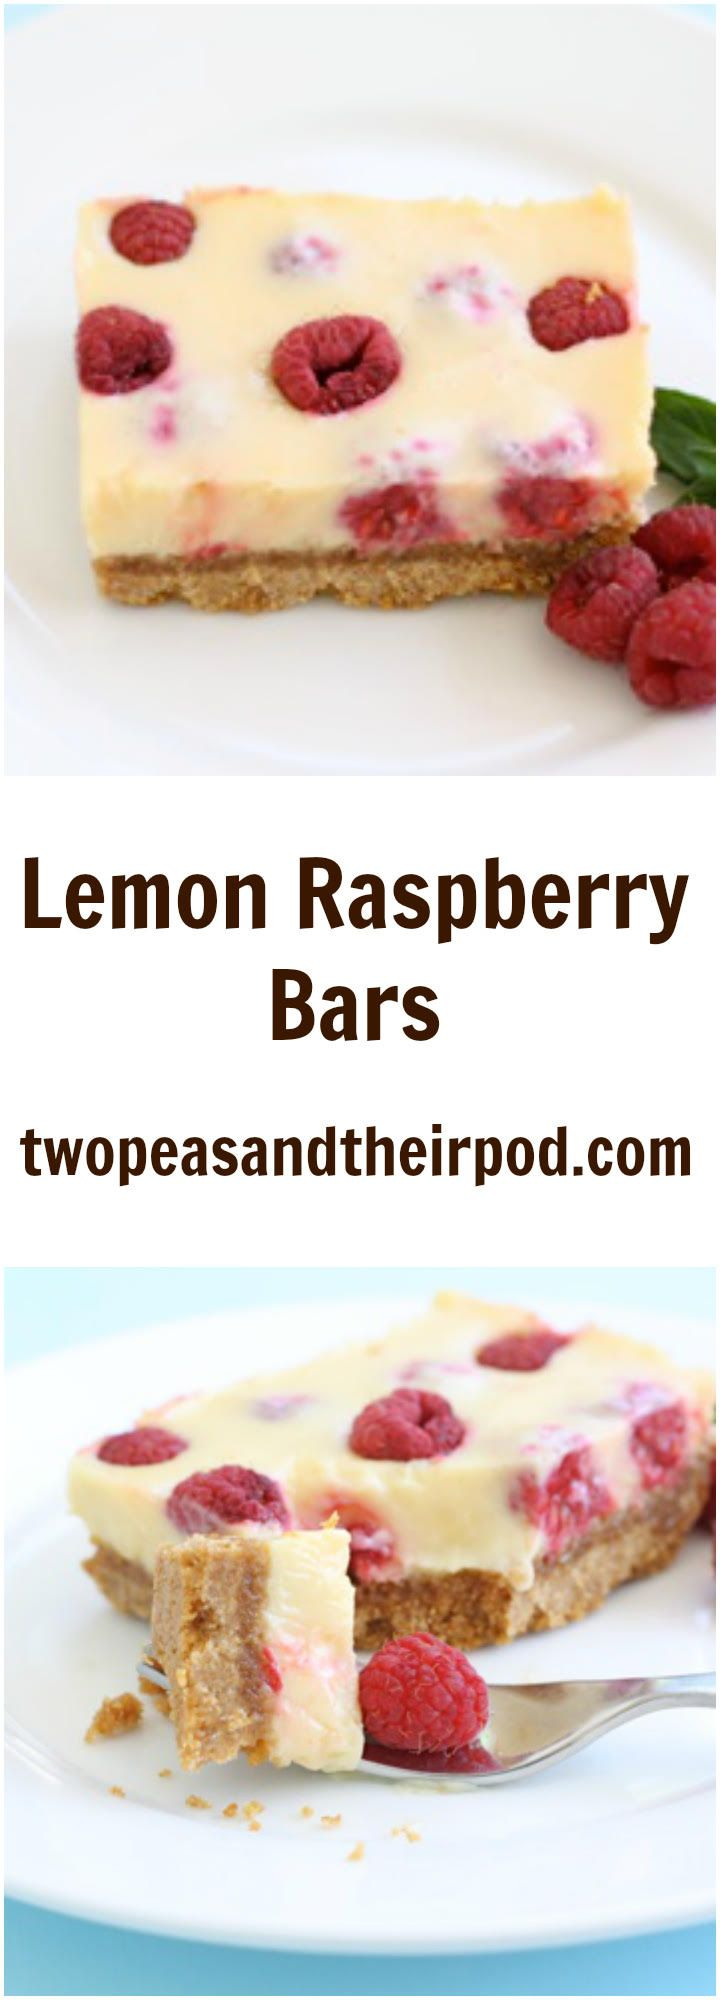 25+ best ideas about Lemon raspberry bars on Pinterest ...